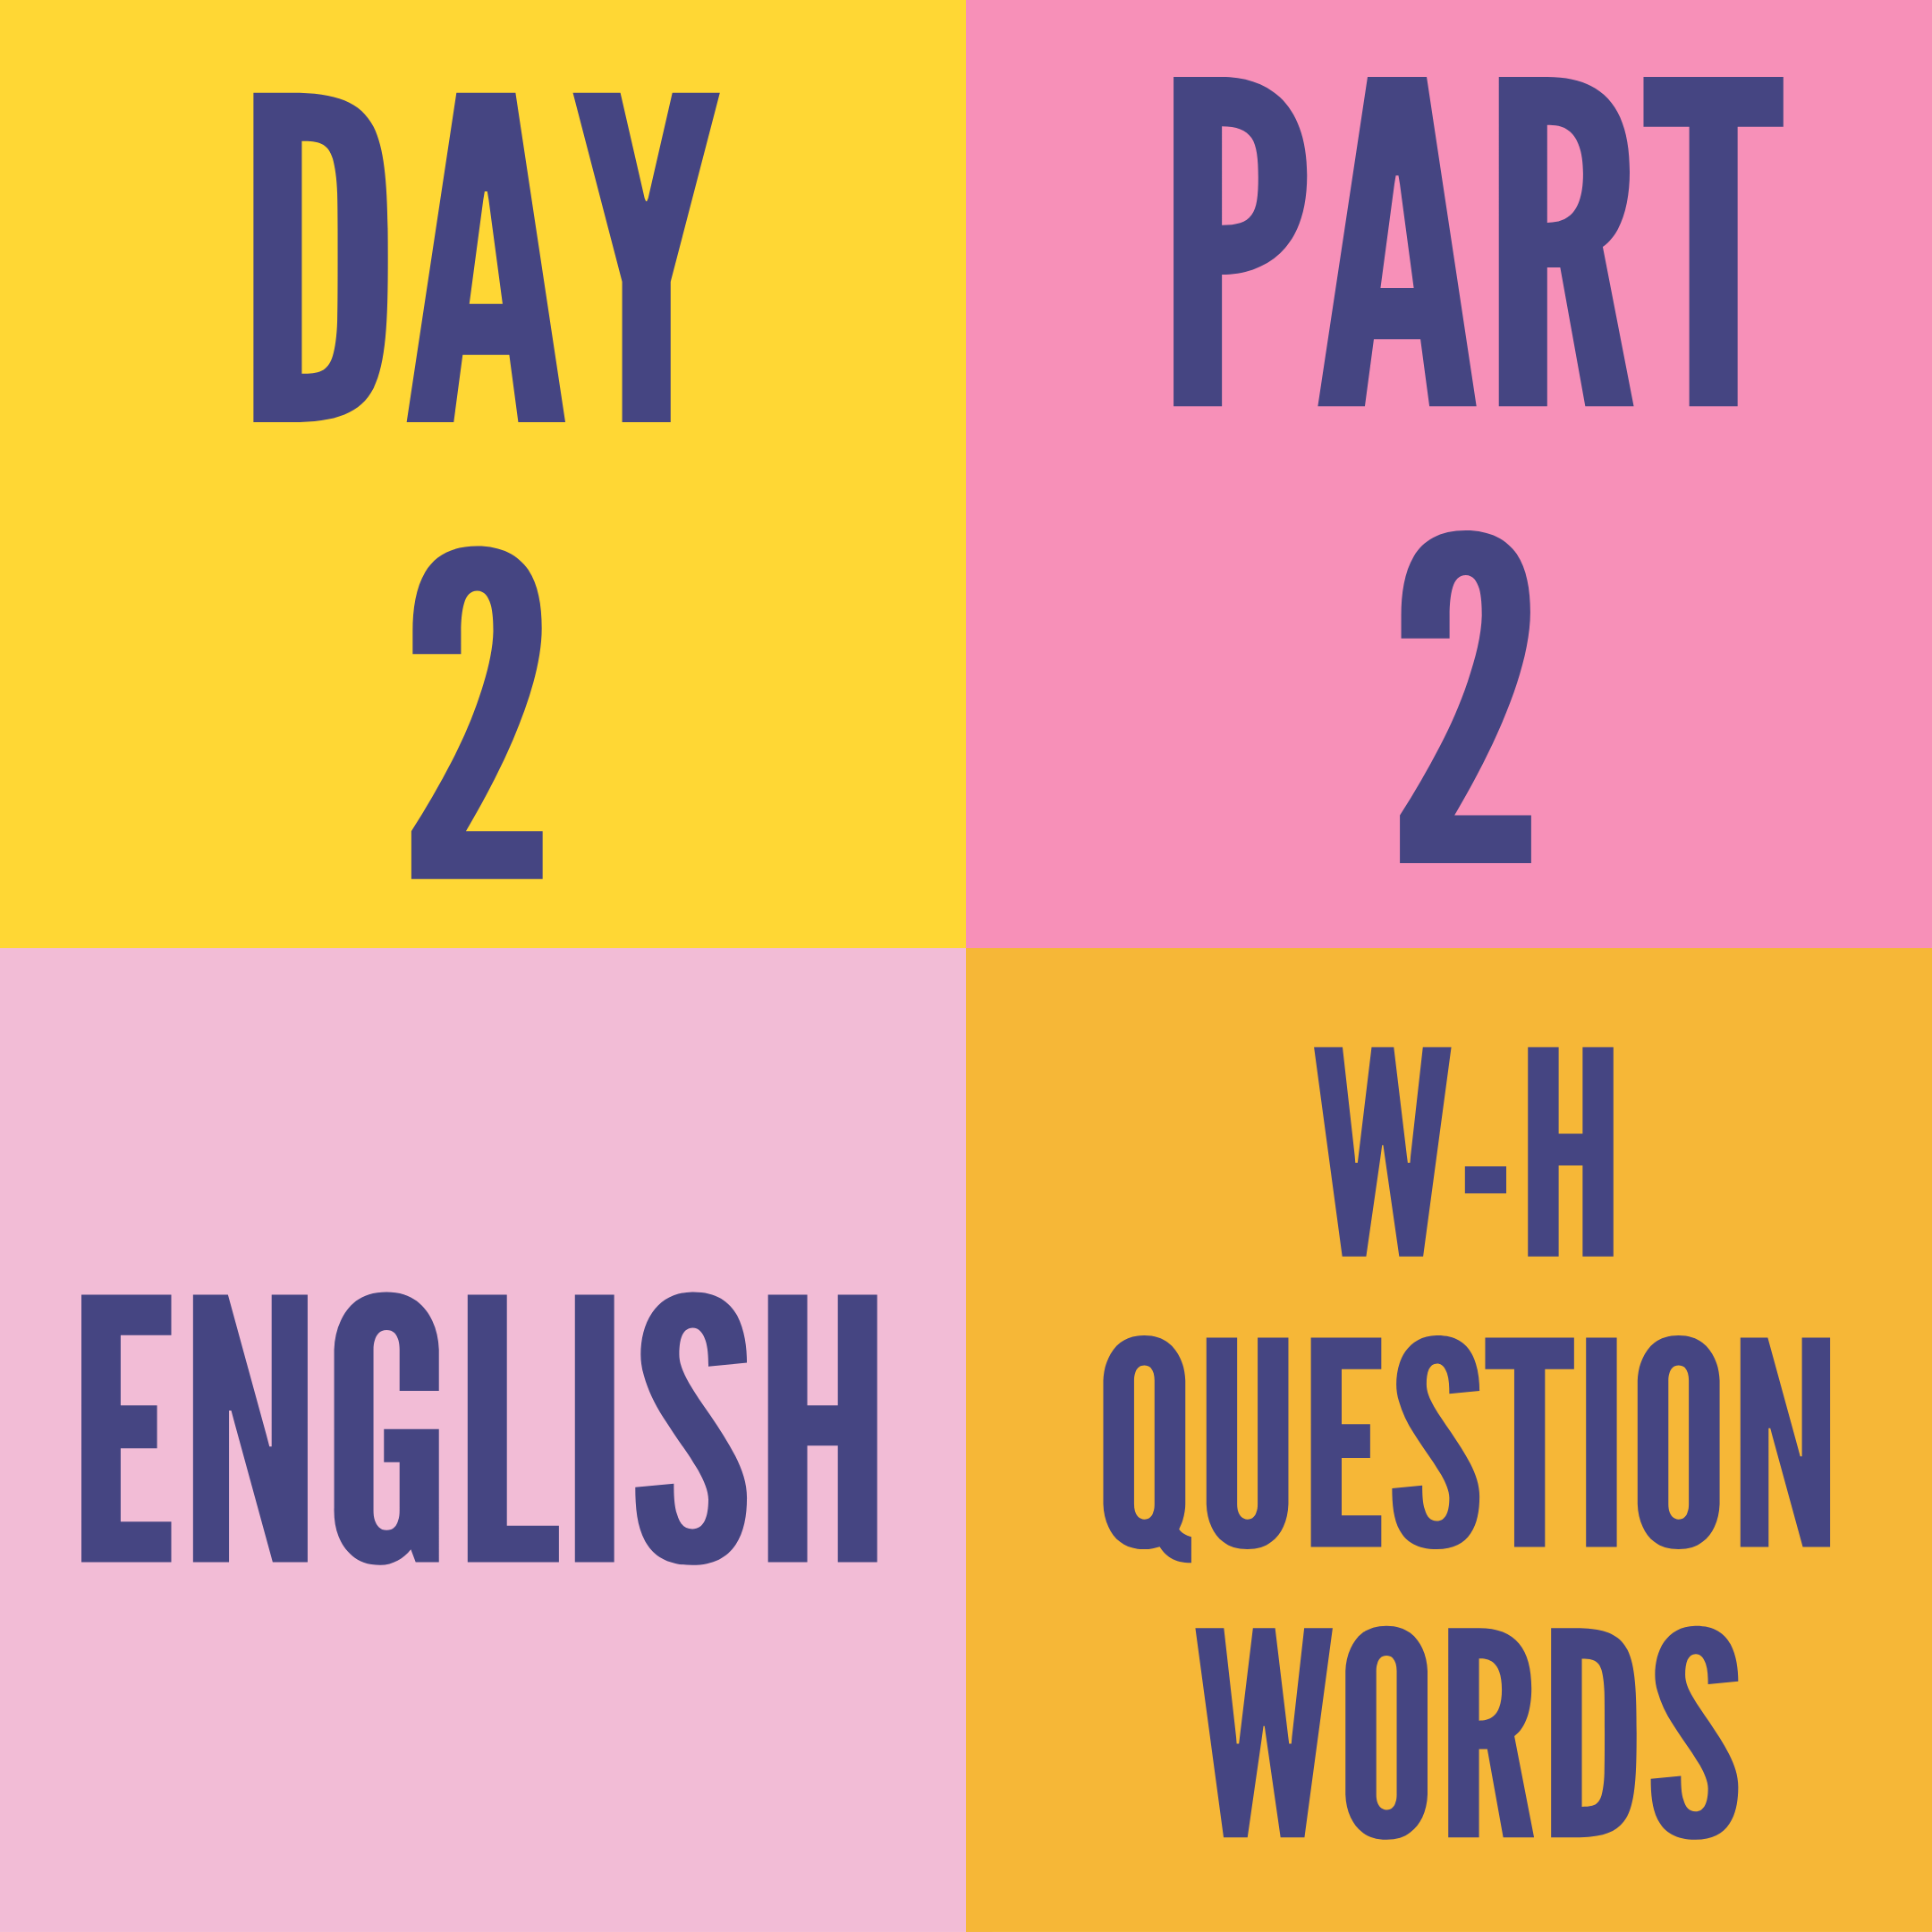 DAY-2 PART-2 W-H QUESTION WORDS